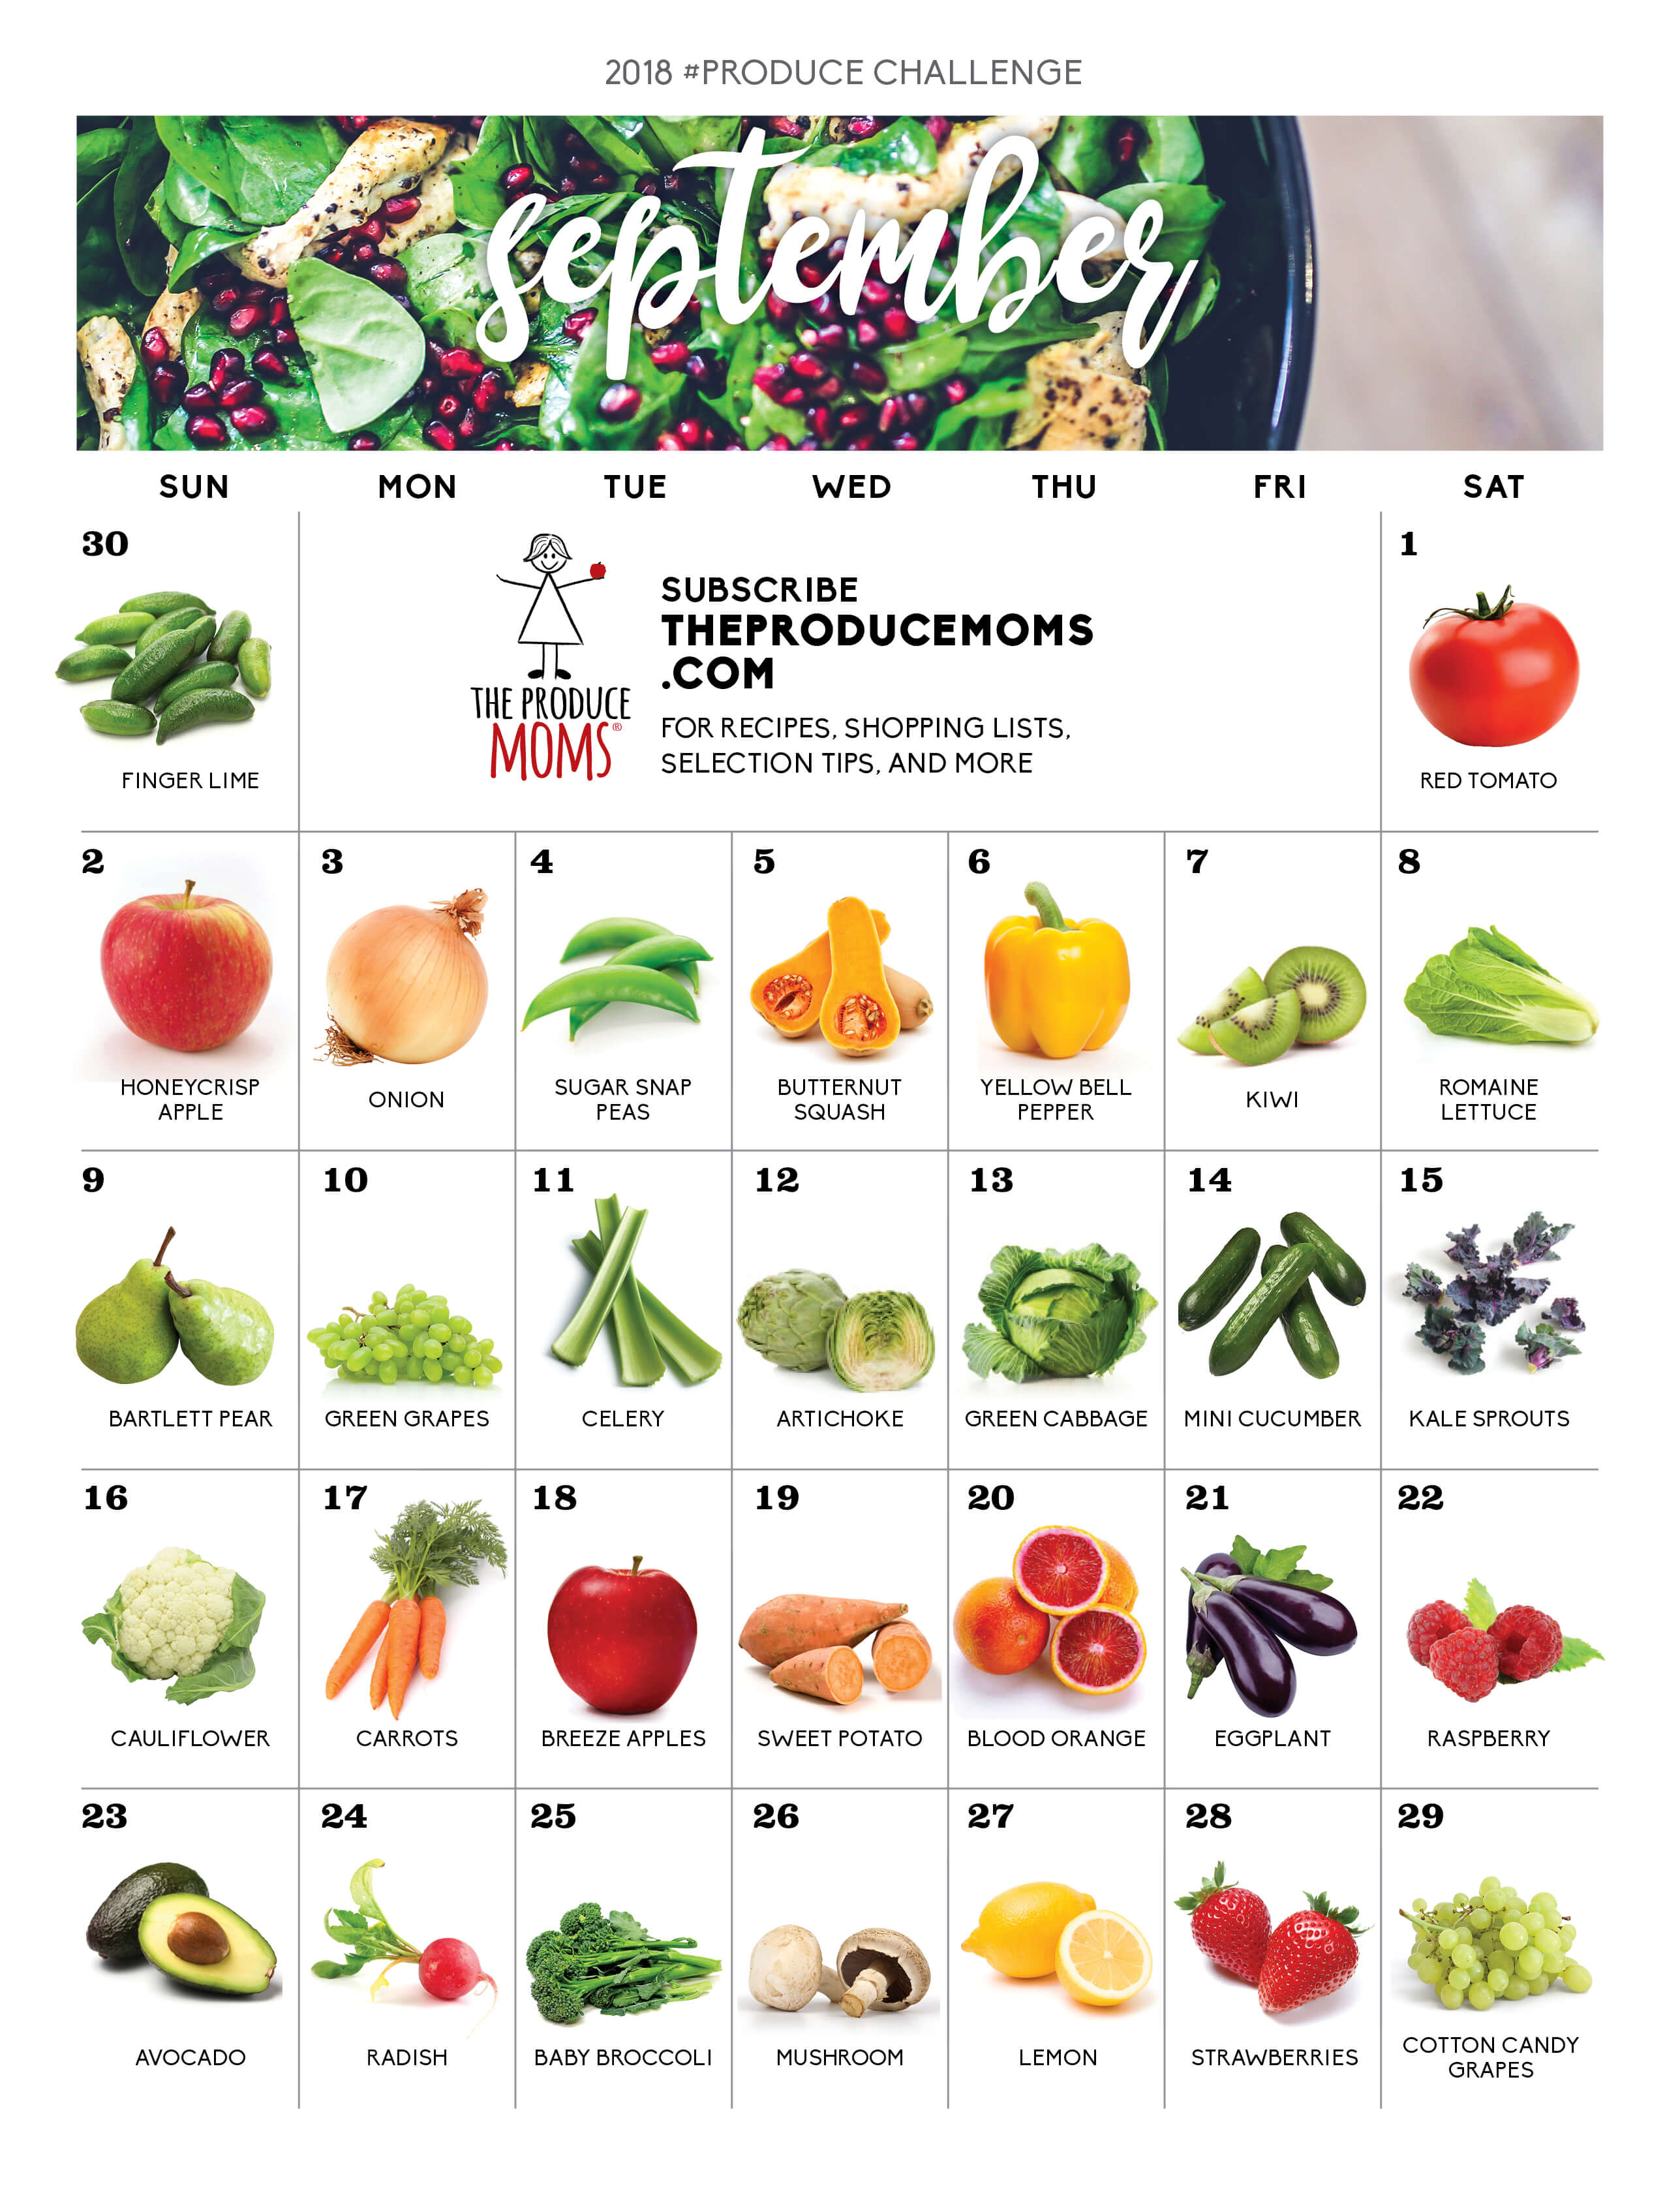 Howling Produce Challenge Can Dogs Eat Safe Dangerous Fruits Vegetables Can Dogs Eat Zucchini Pancakes Can Dogs Eat Vegetables Raw bark post Can Dogs Eat Zucchini